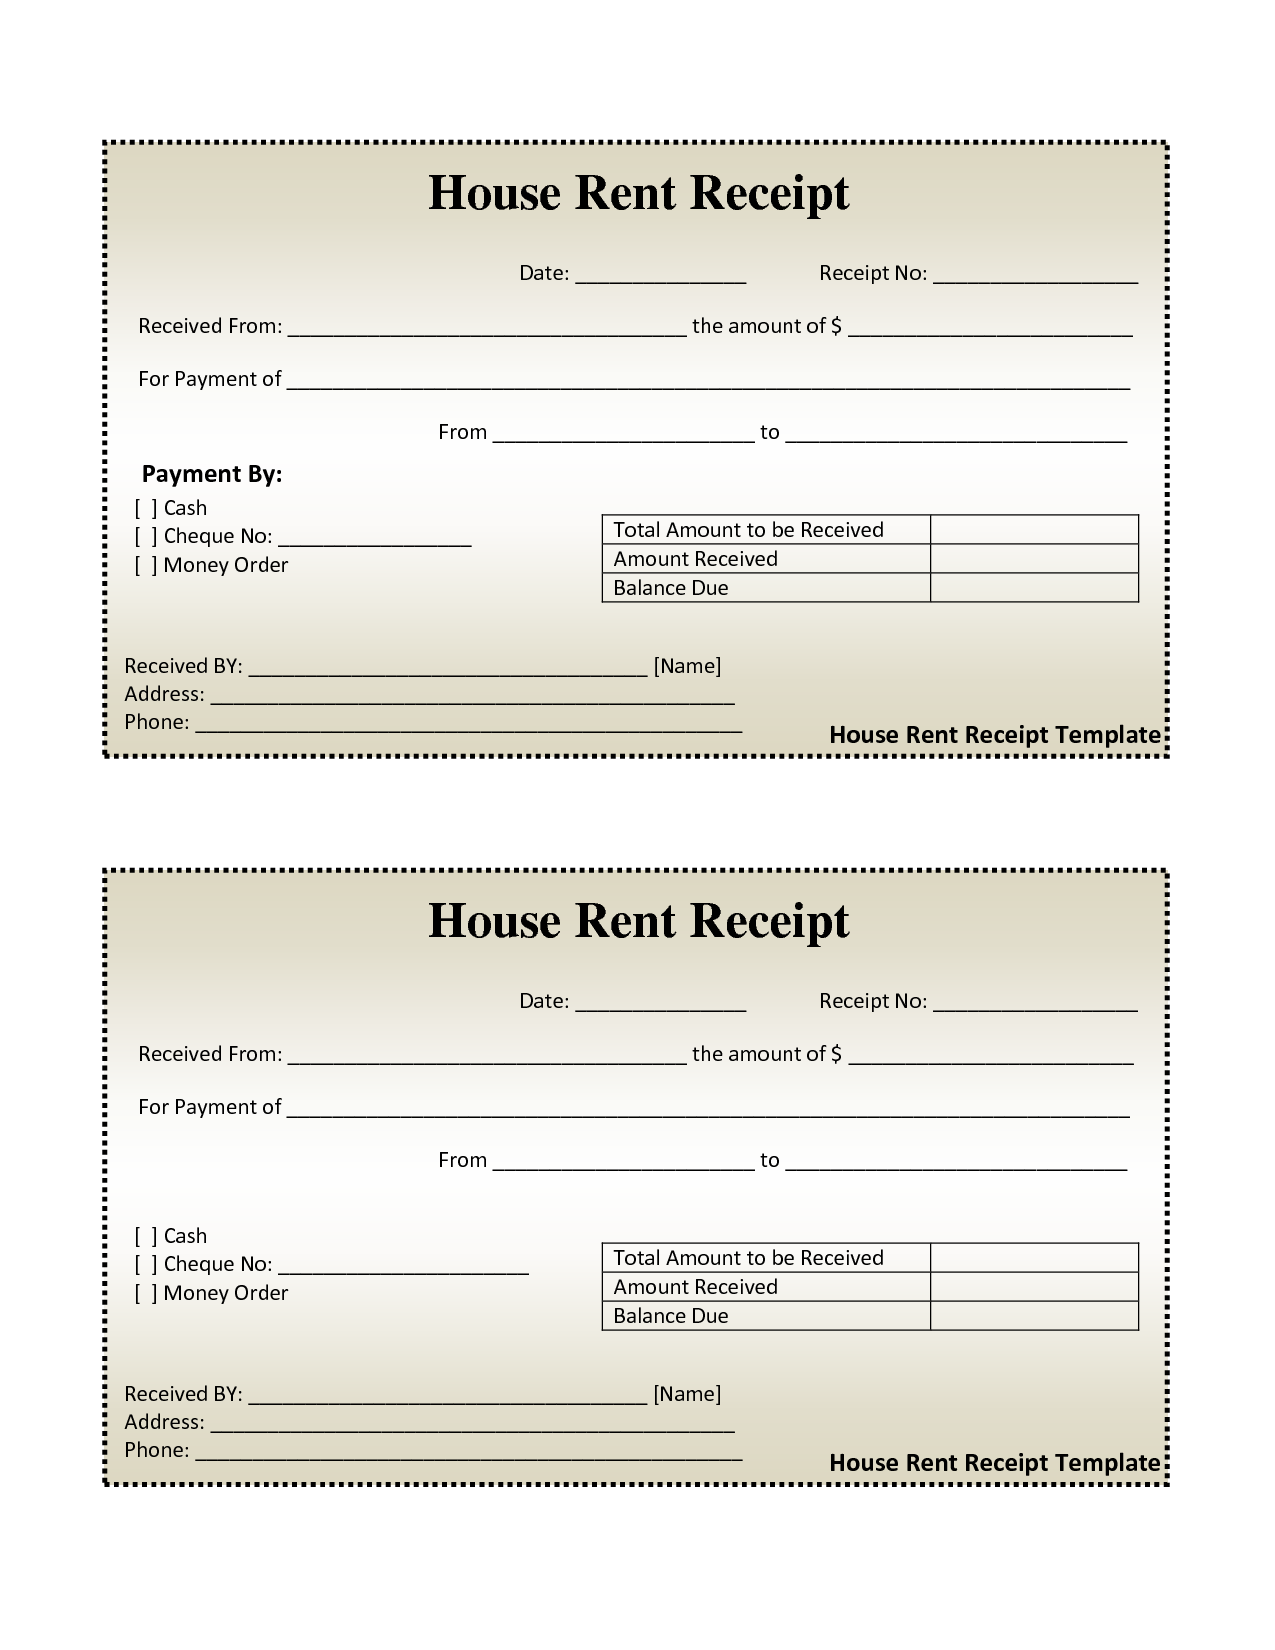 Free House Rental Invoice | House Rent Receipt Template   DOC  Format Of Rent Receipt